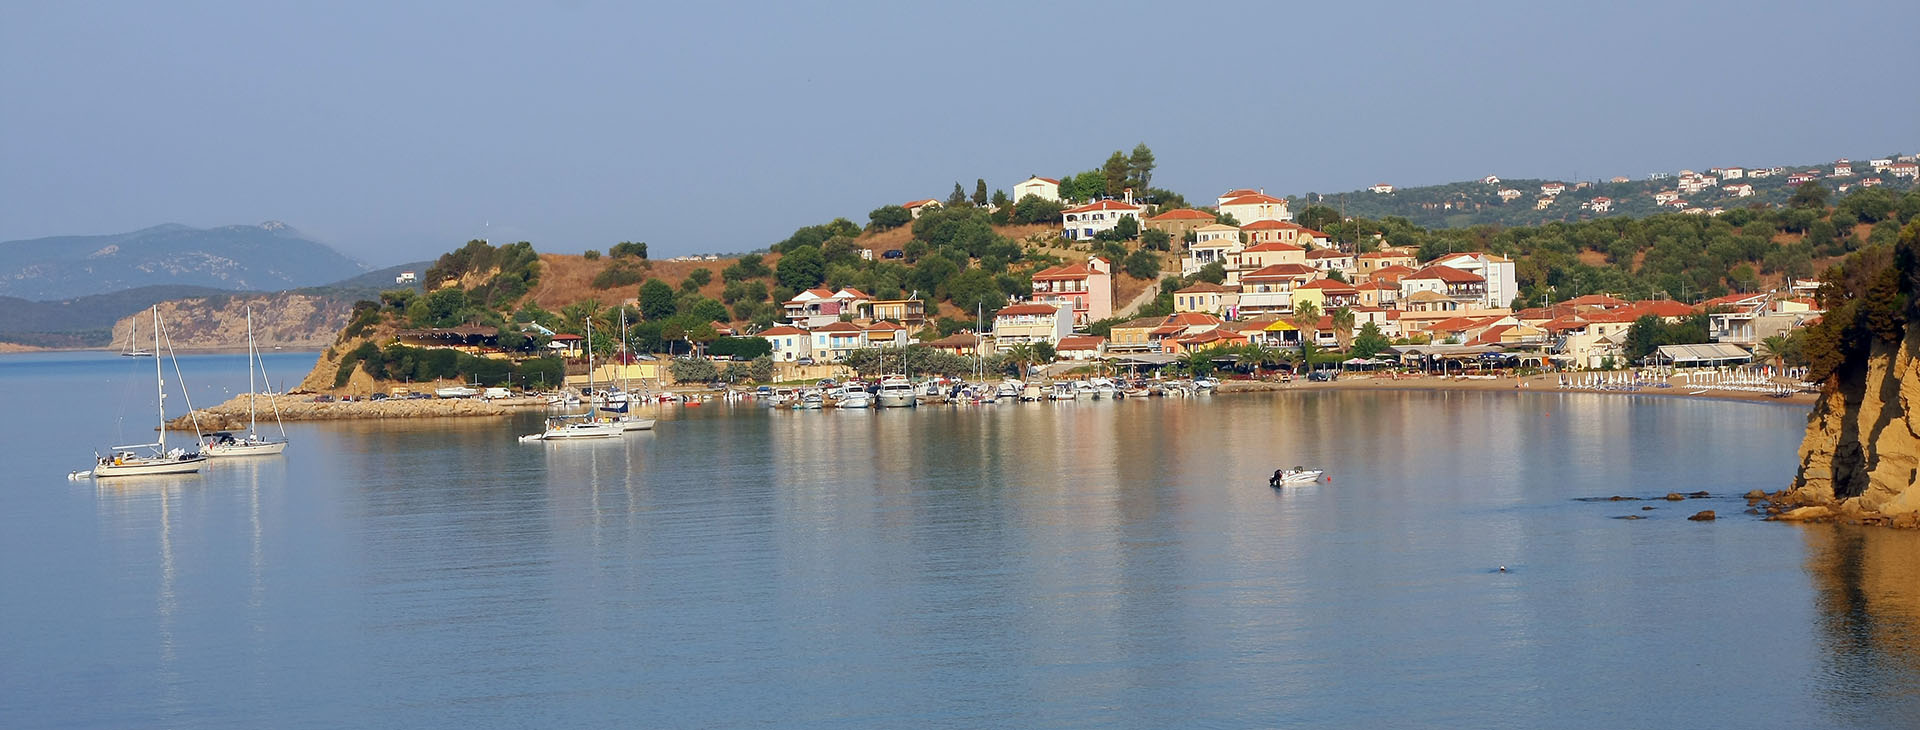 Finikounta village, Messinia